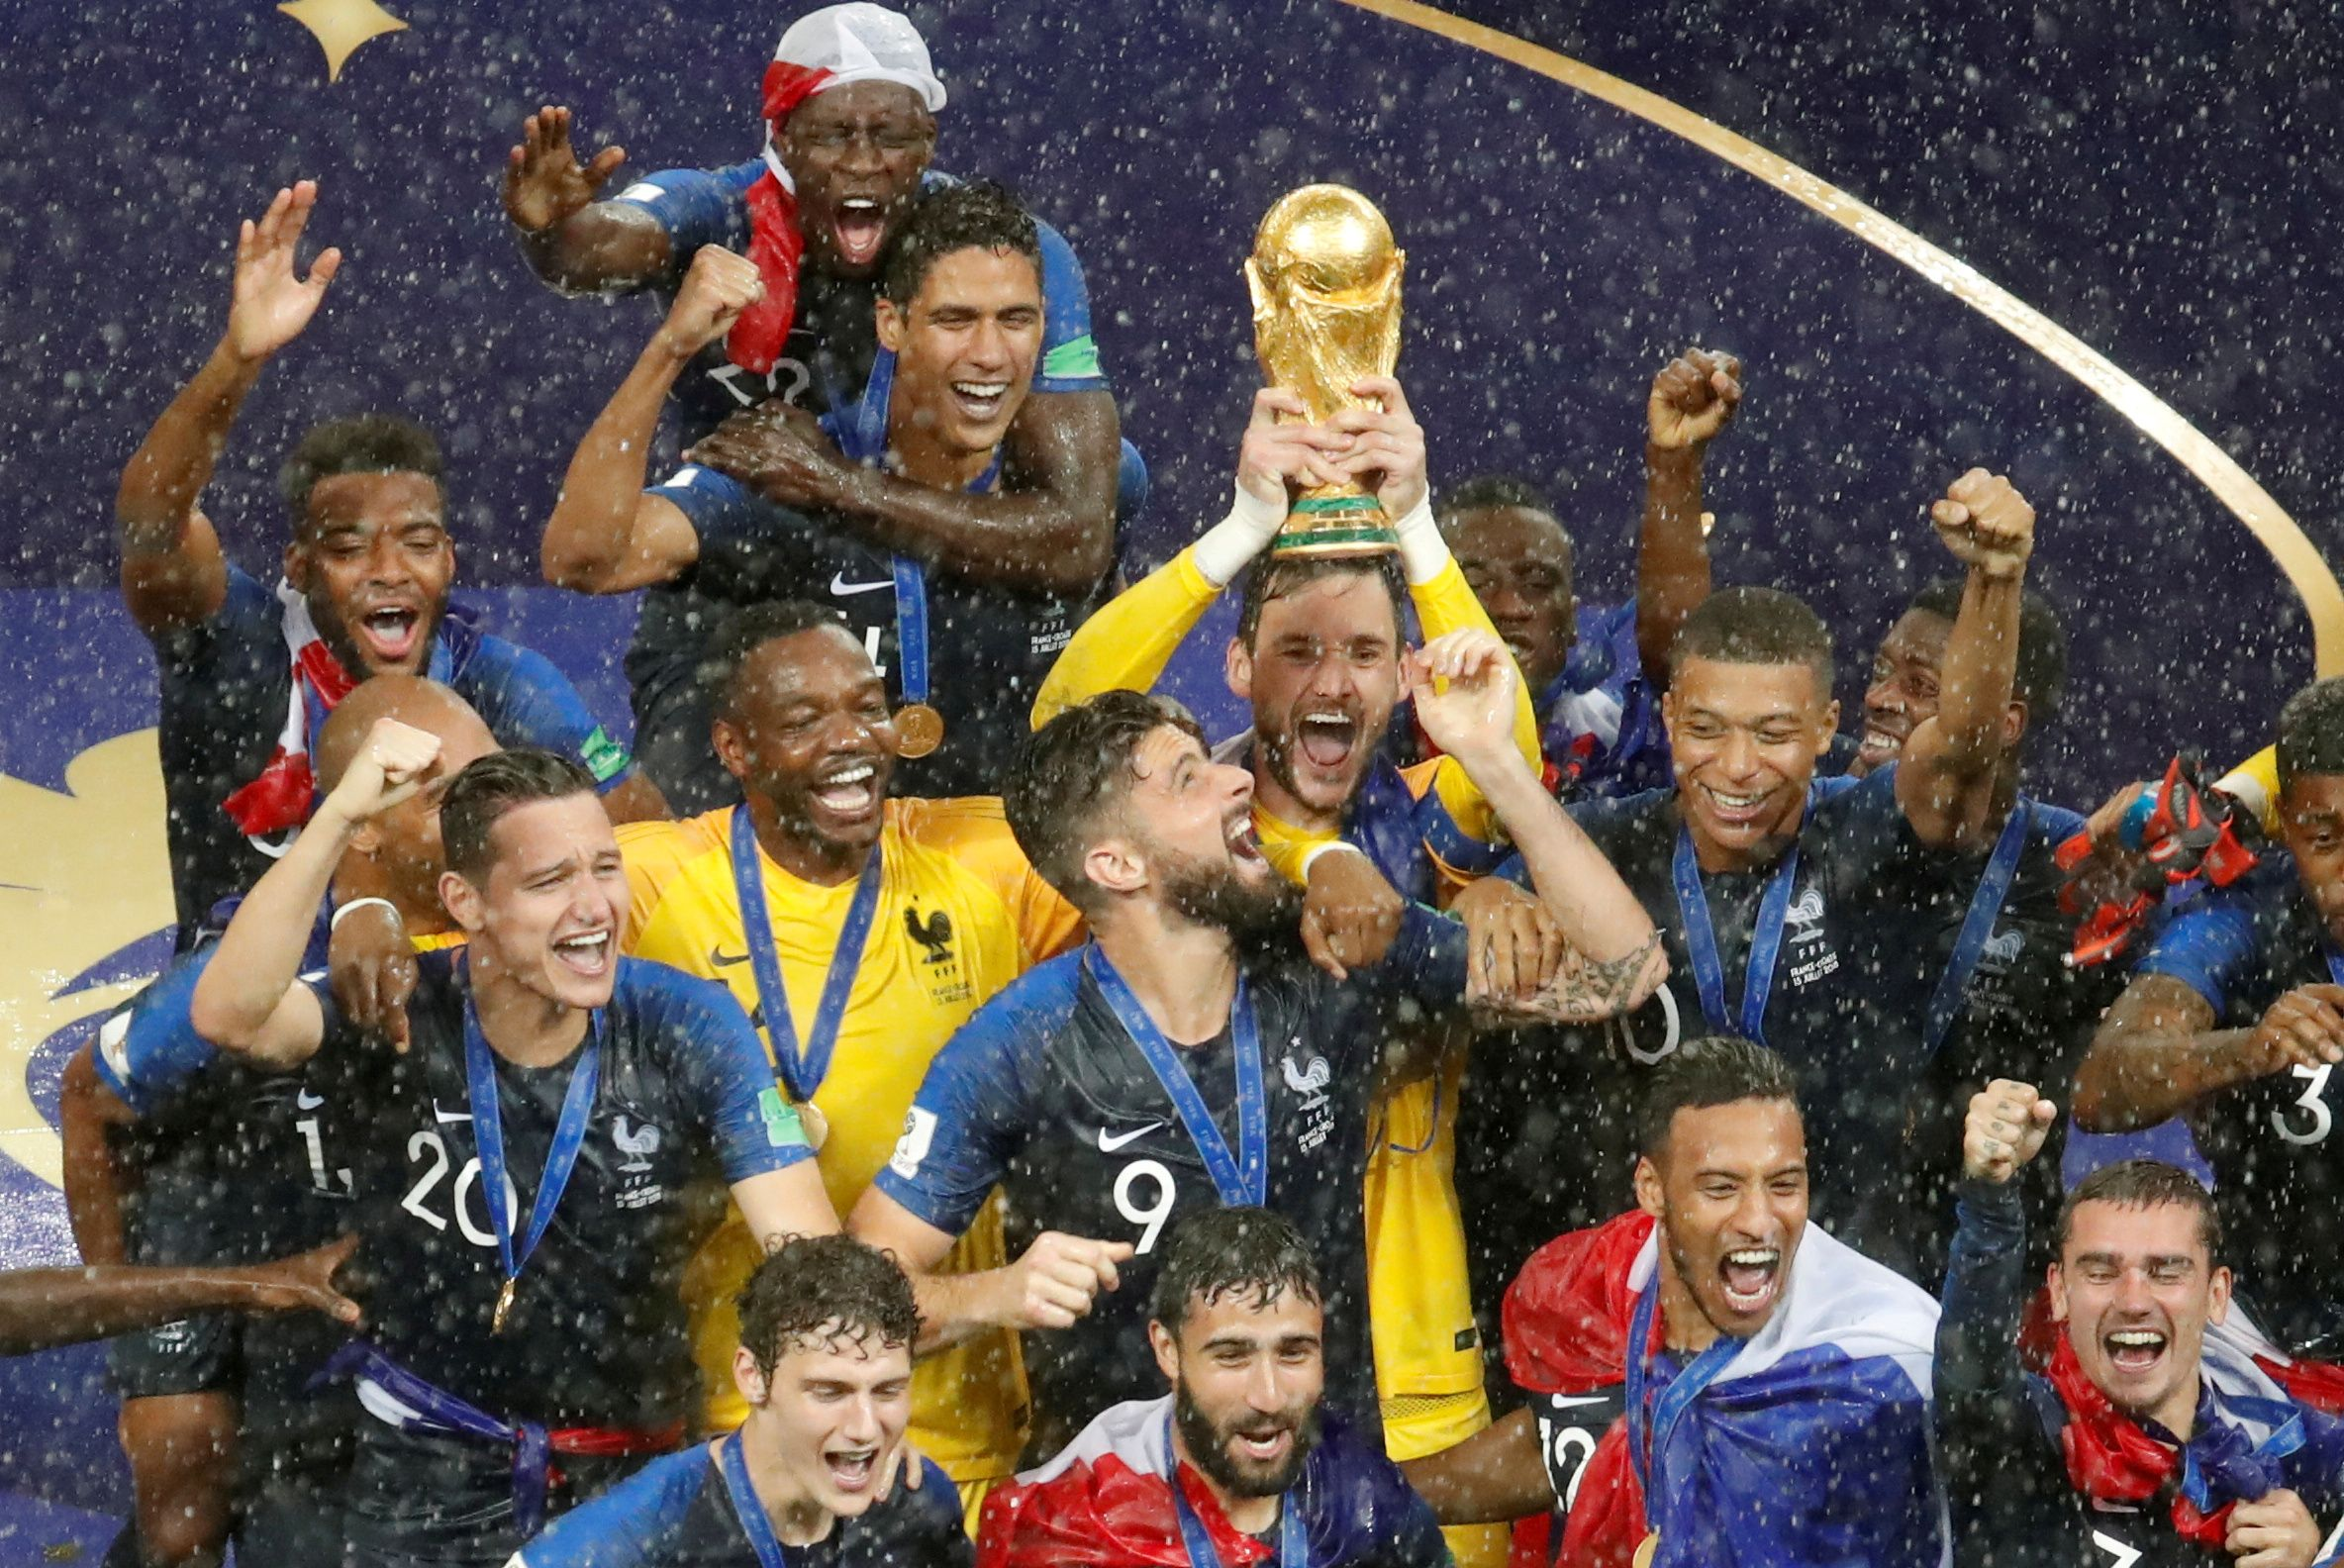 bb64b218b France s Hugo Lloris lifts the trophy as they celebrate winning the FIFA  World Cup after winning the final game against Croatia at Luzhniki Stadium  in ...